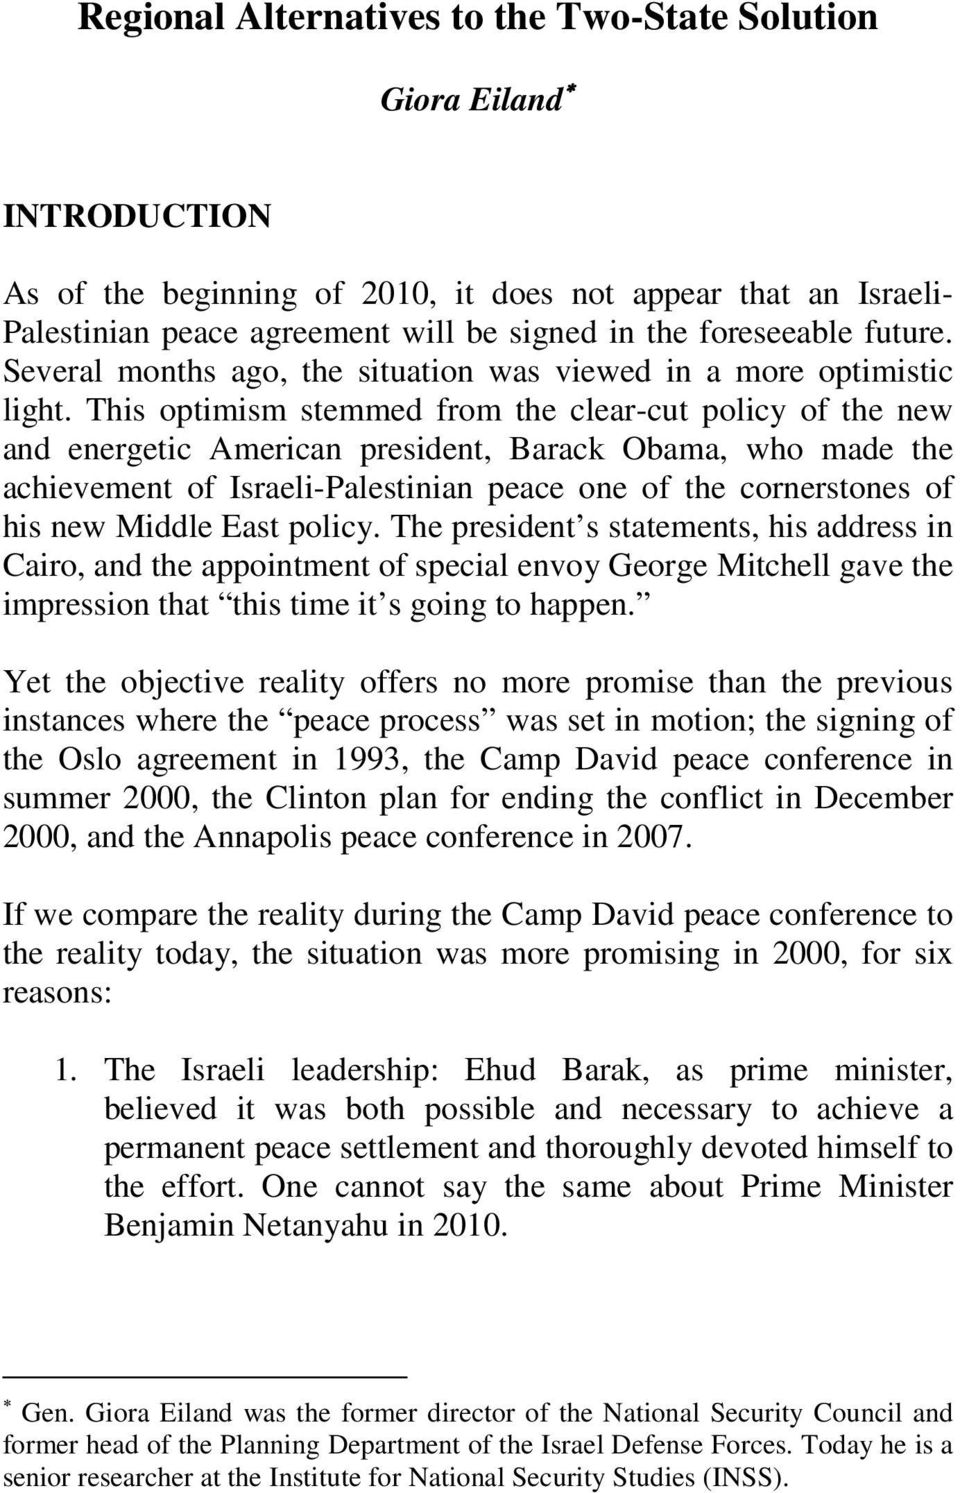 This optimism stemmed from the clear-cut policy of the new and energetic American president, Barack Obama, who made the achievement of Israeli-Palestinian peace one of the cornerstones of his new